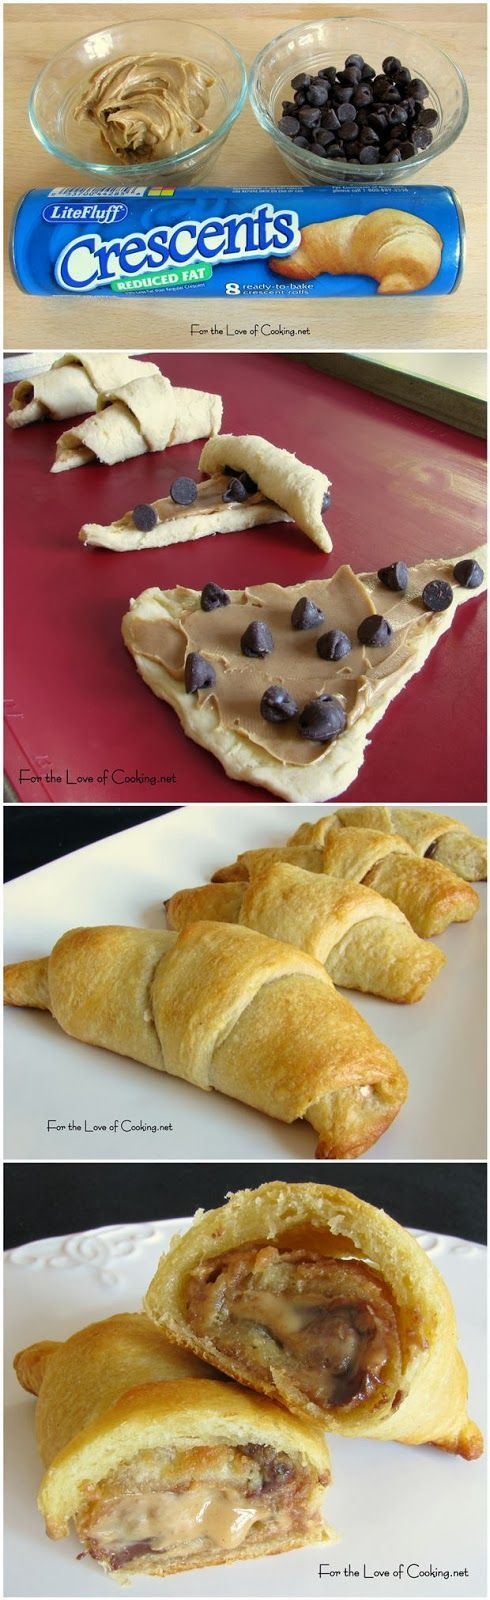 Chocolate and Peanut Butter Crescent Rolls.Butter Crescents, Chocolate ...